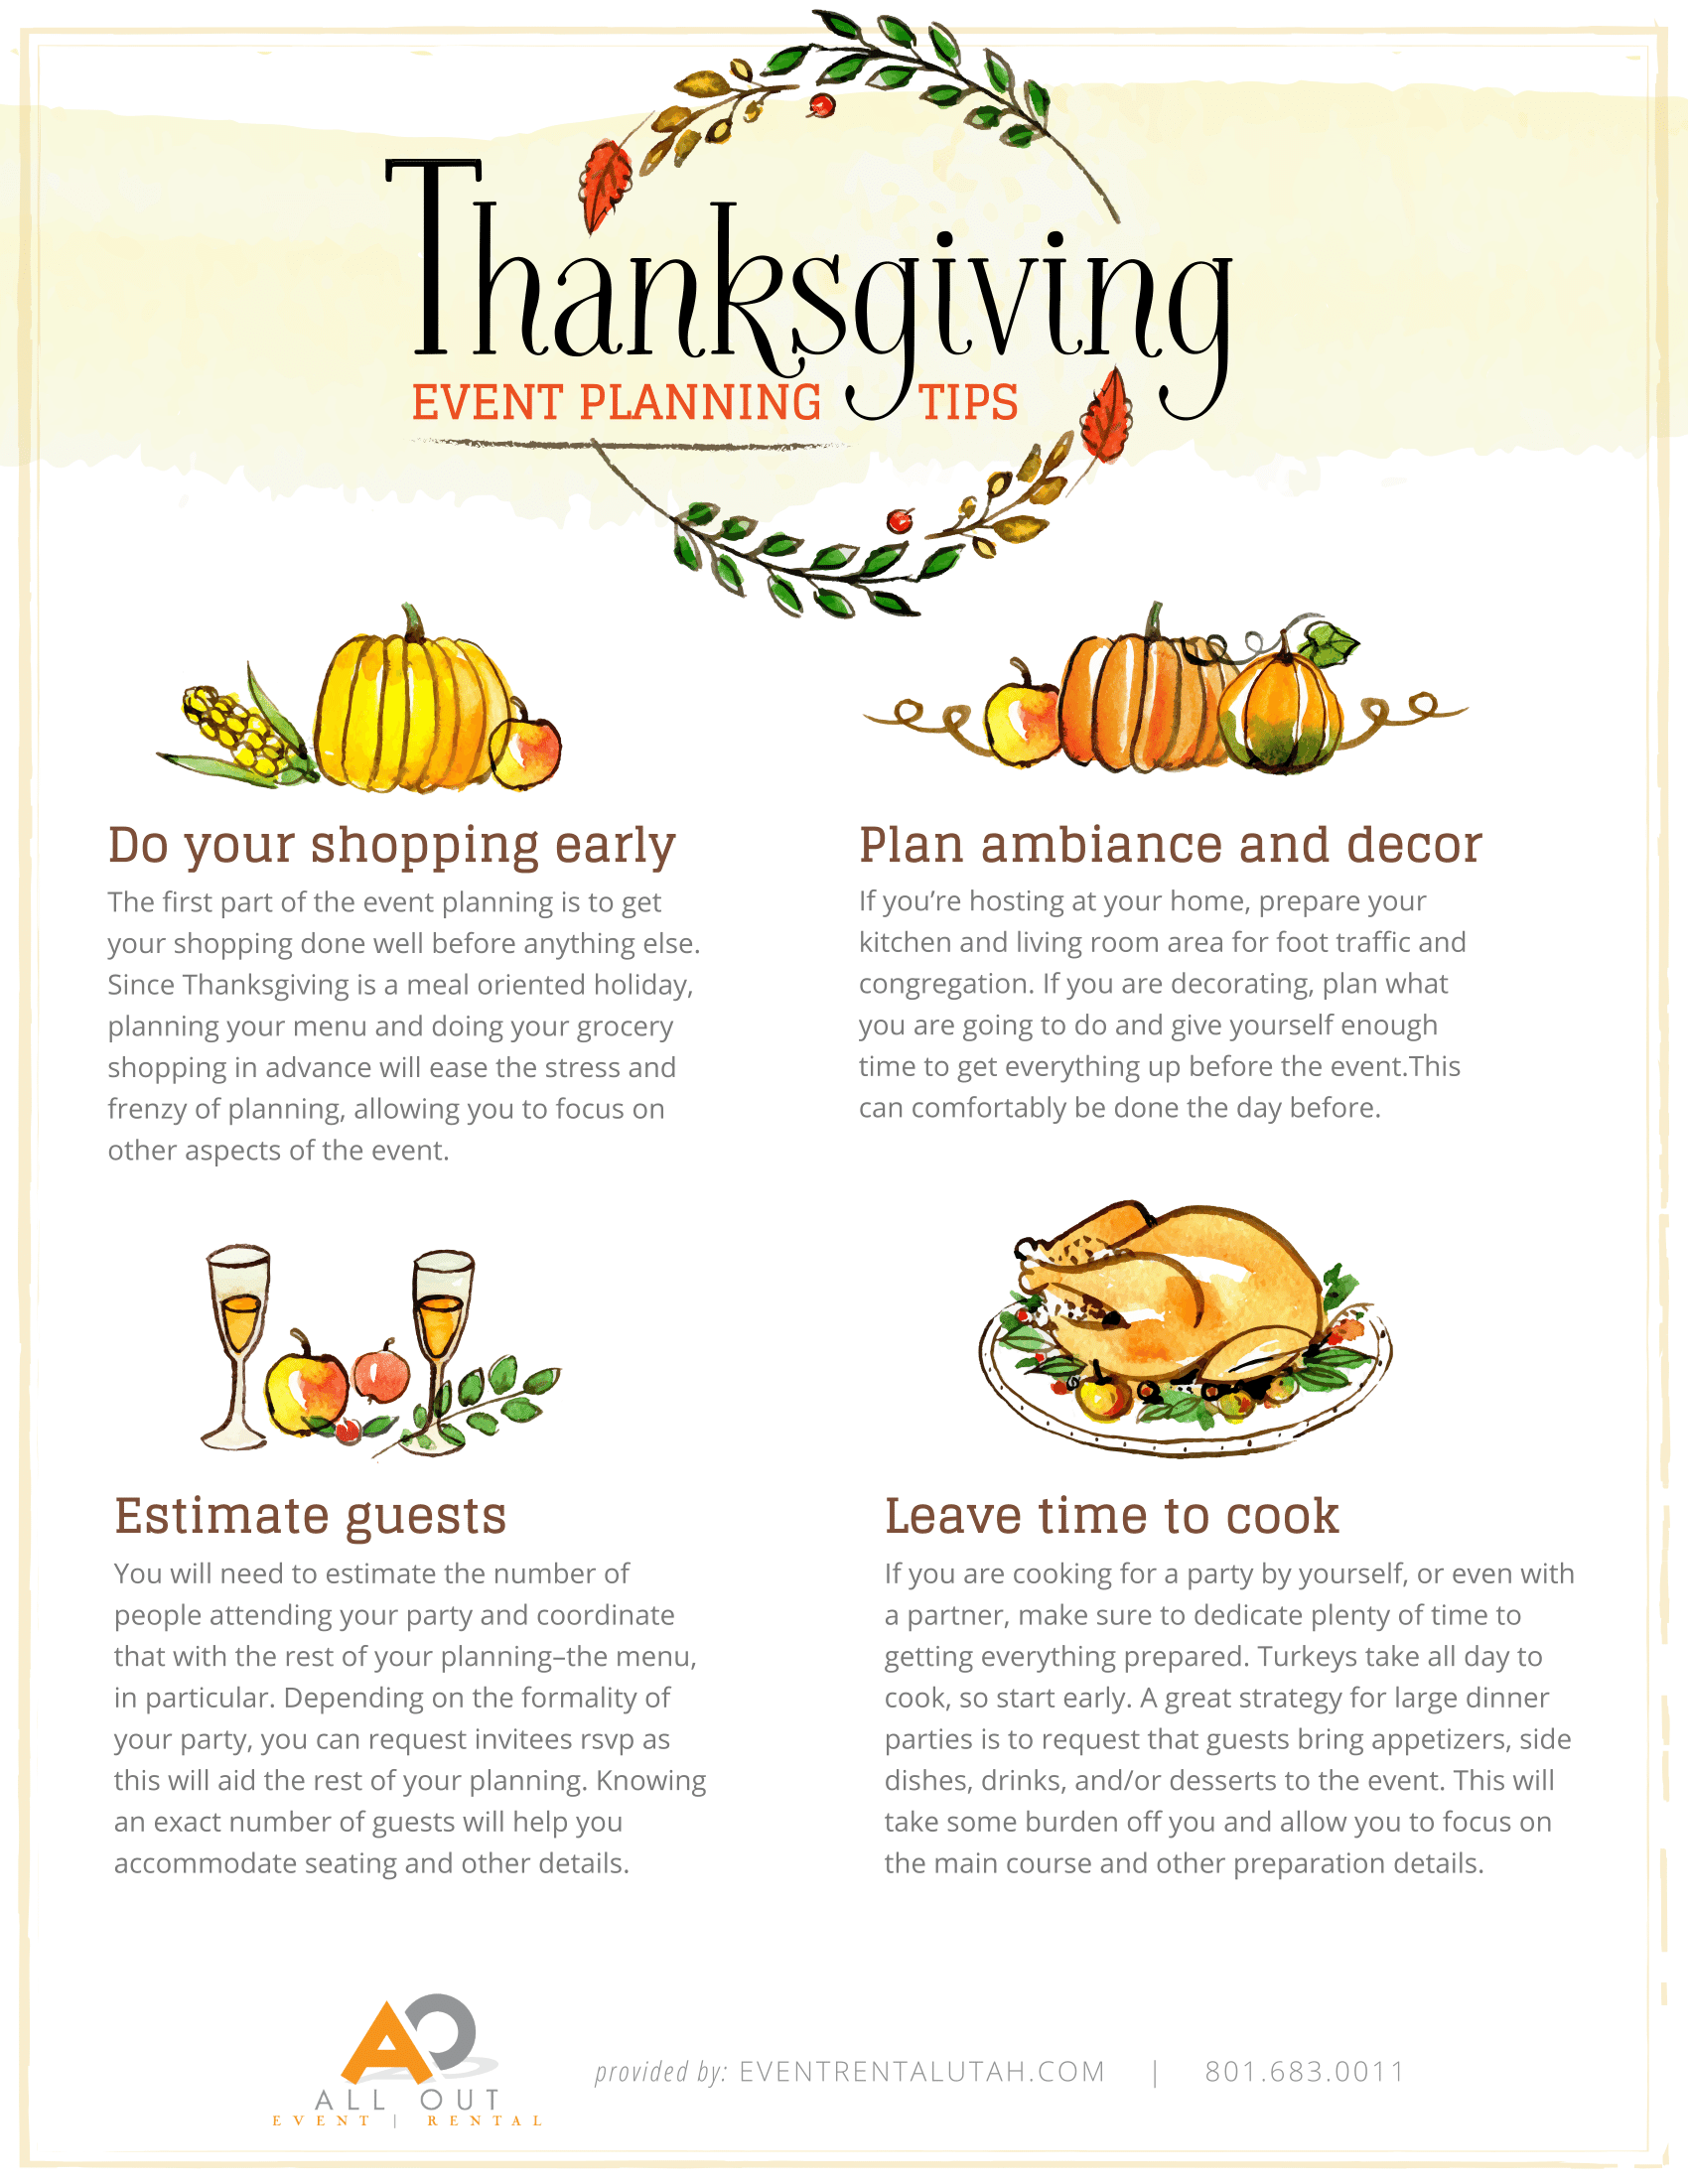 AllOut-Thanksgiving-1